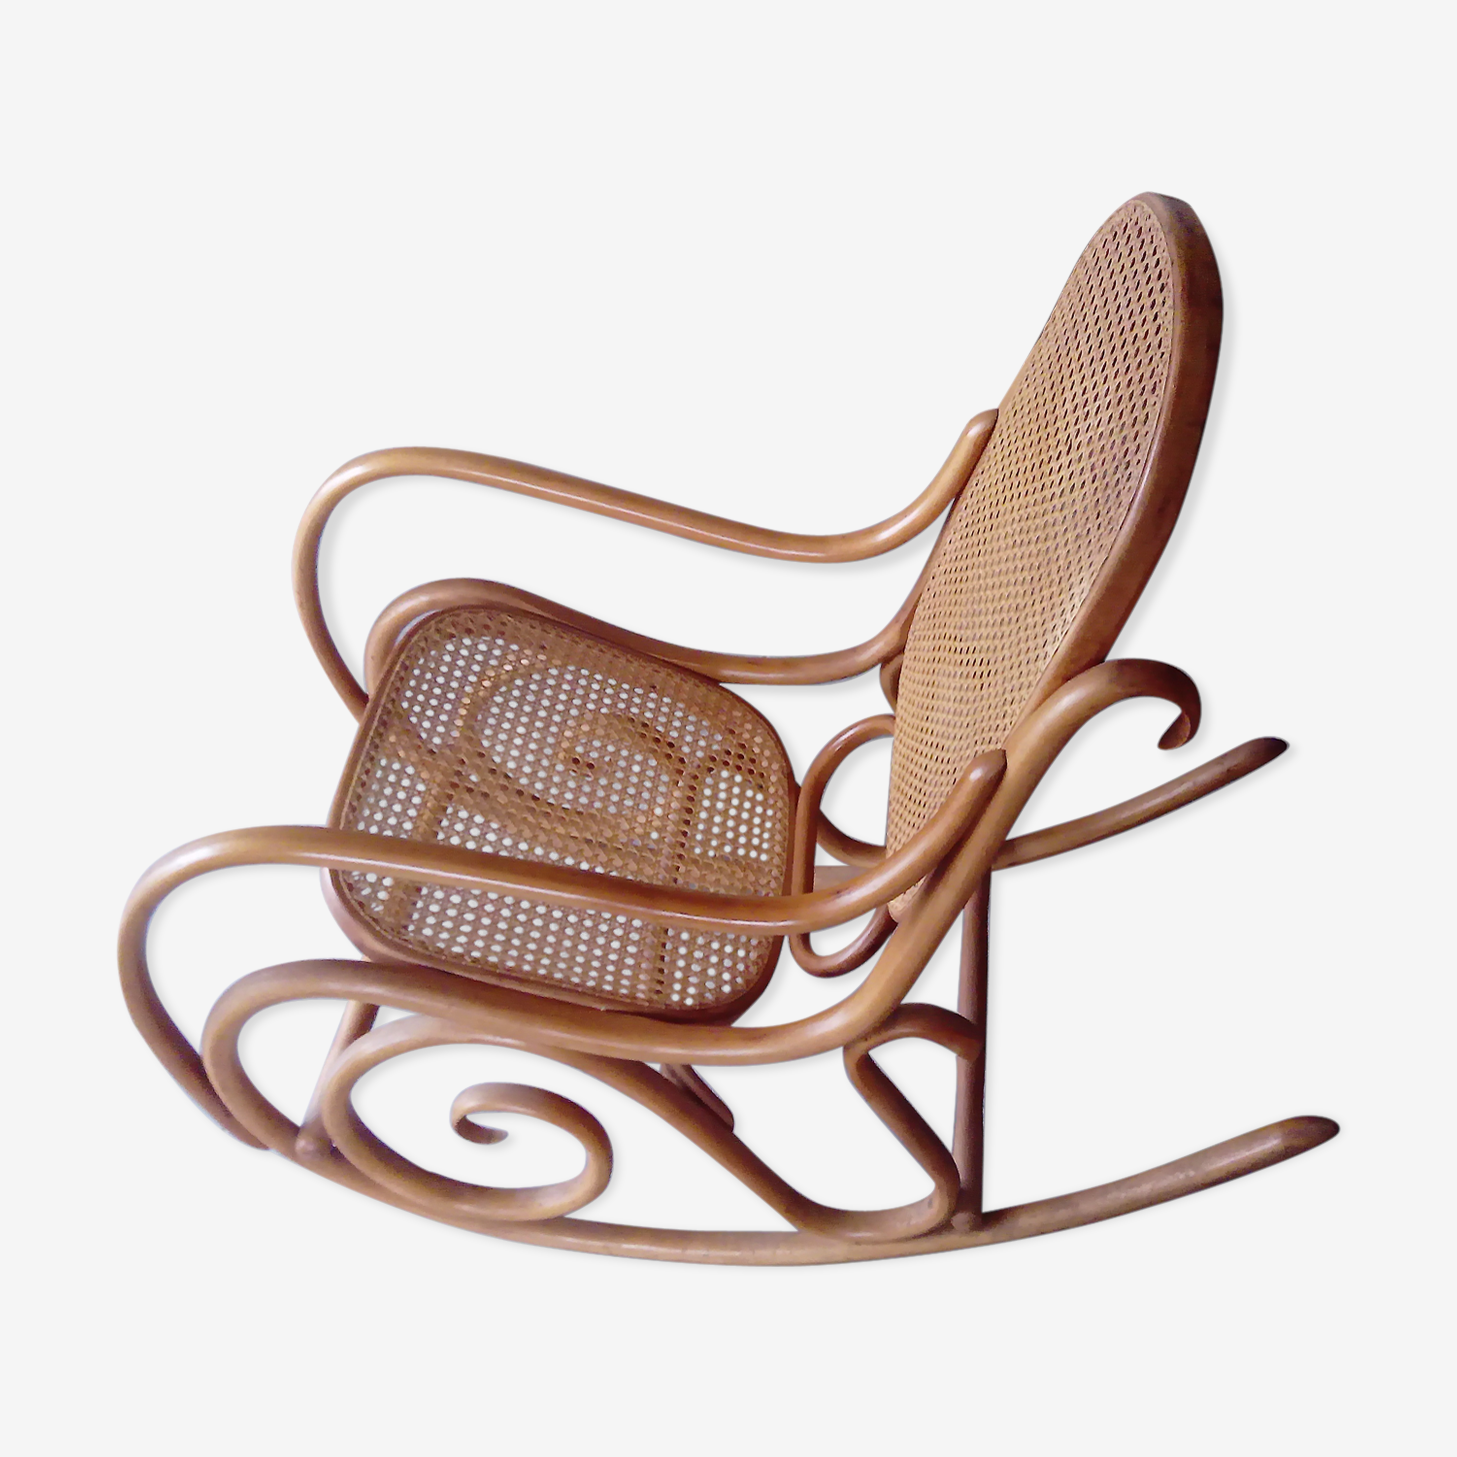 Rocking-chair avec cannage